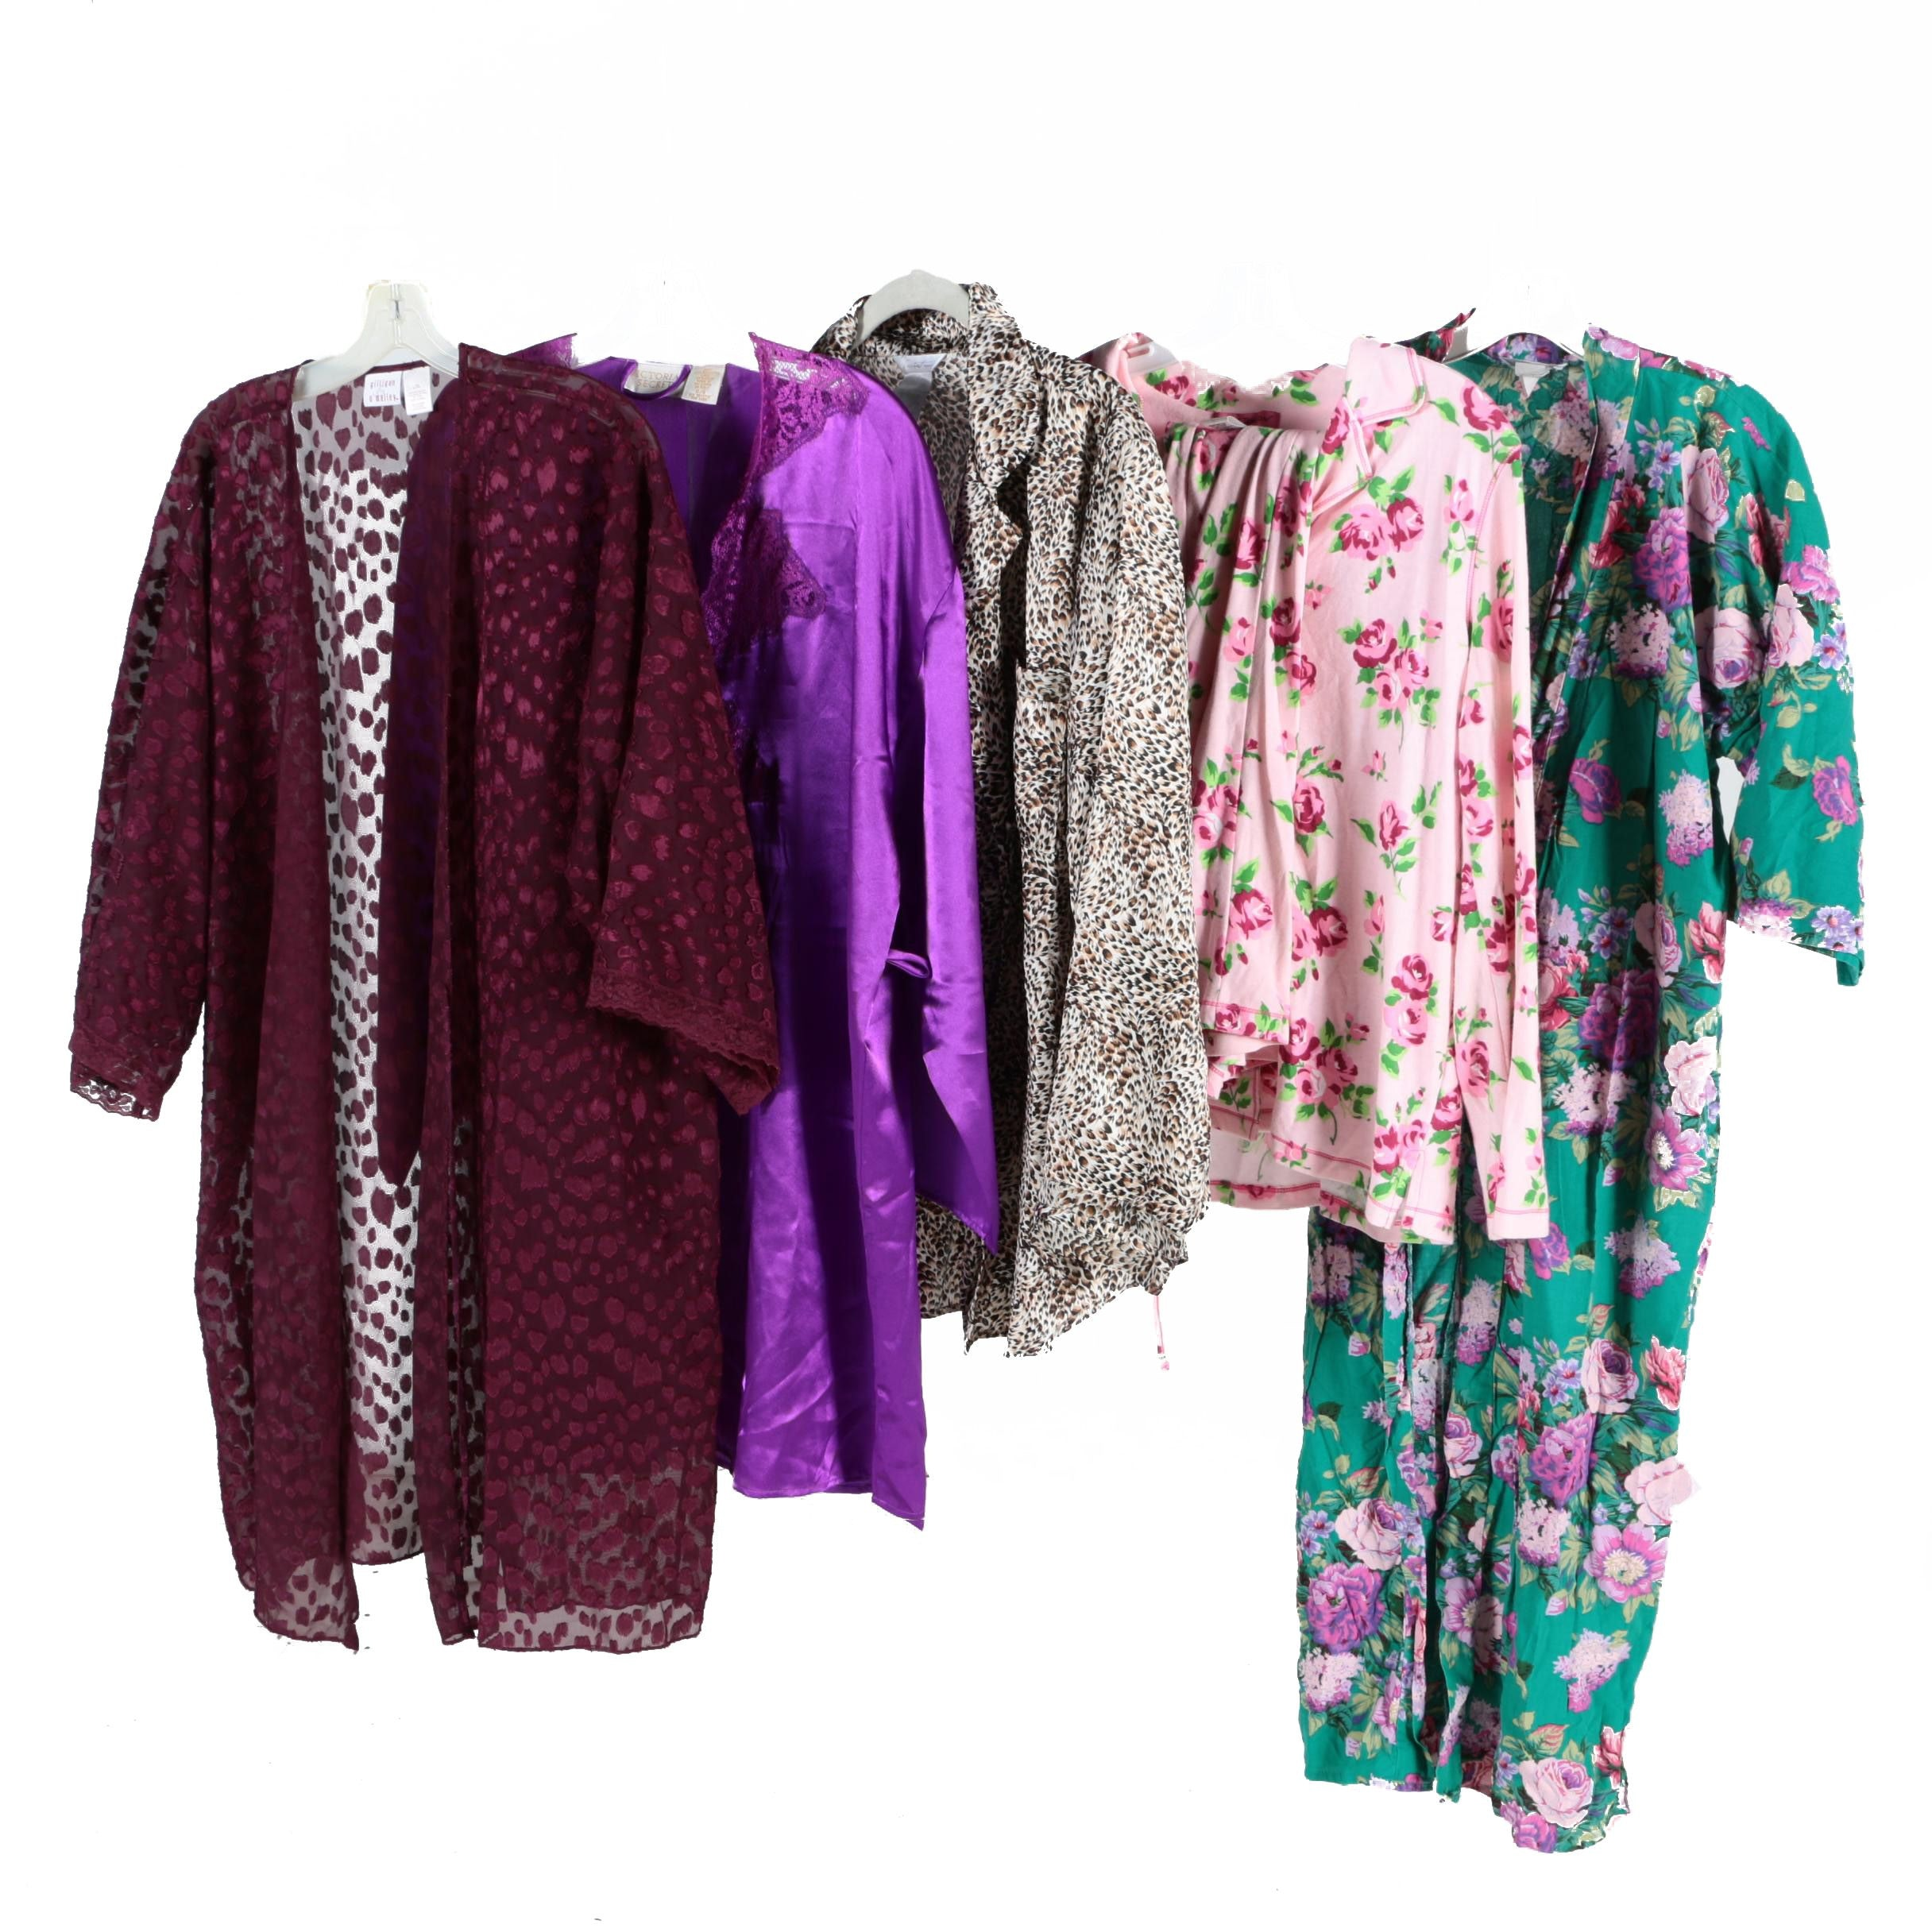 Sleepwear Including Betsey Johnson and Victoria's Secret